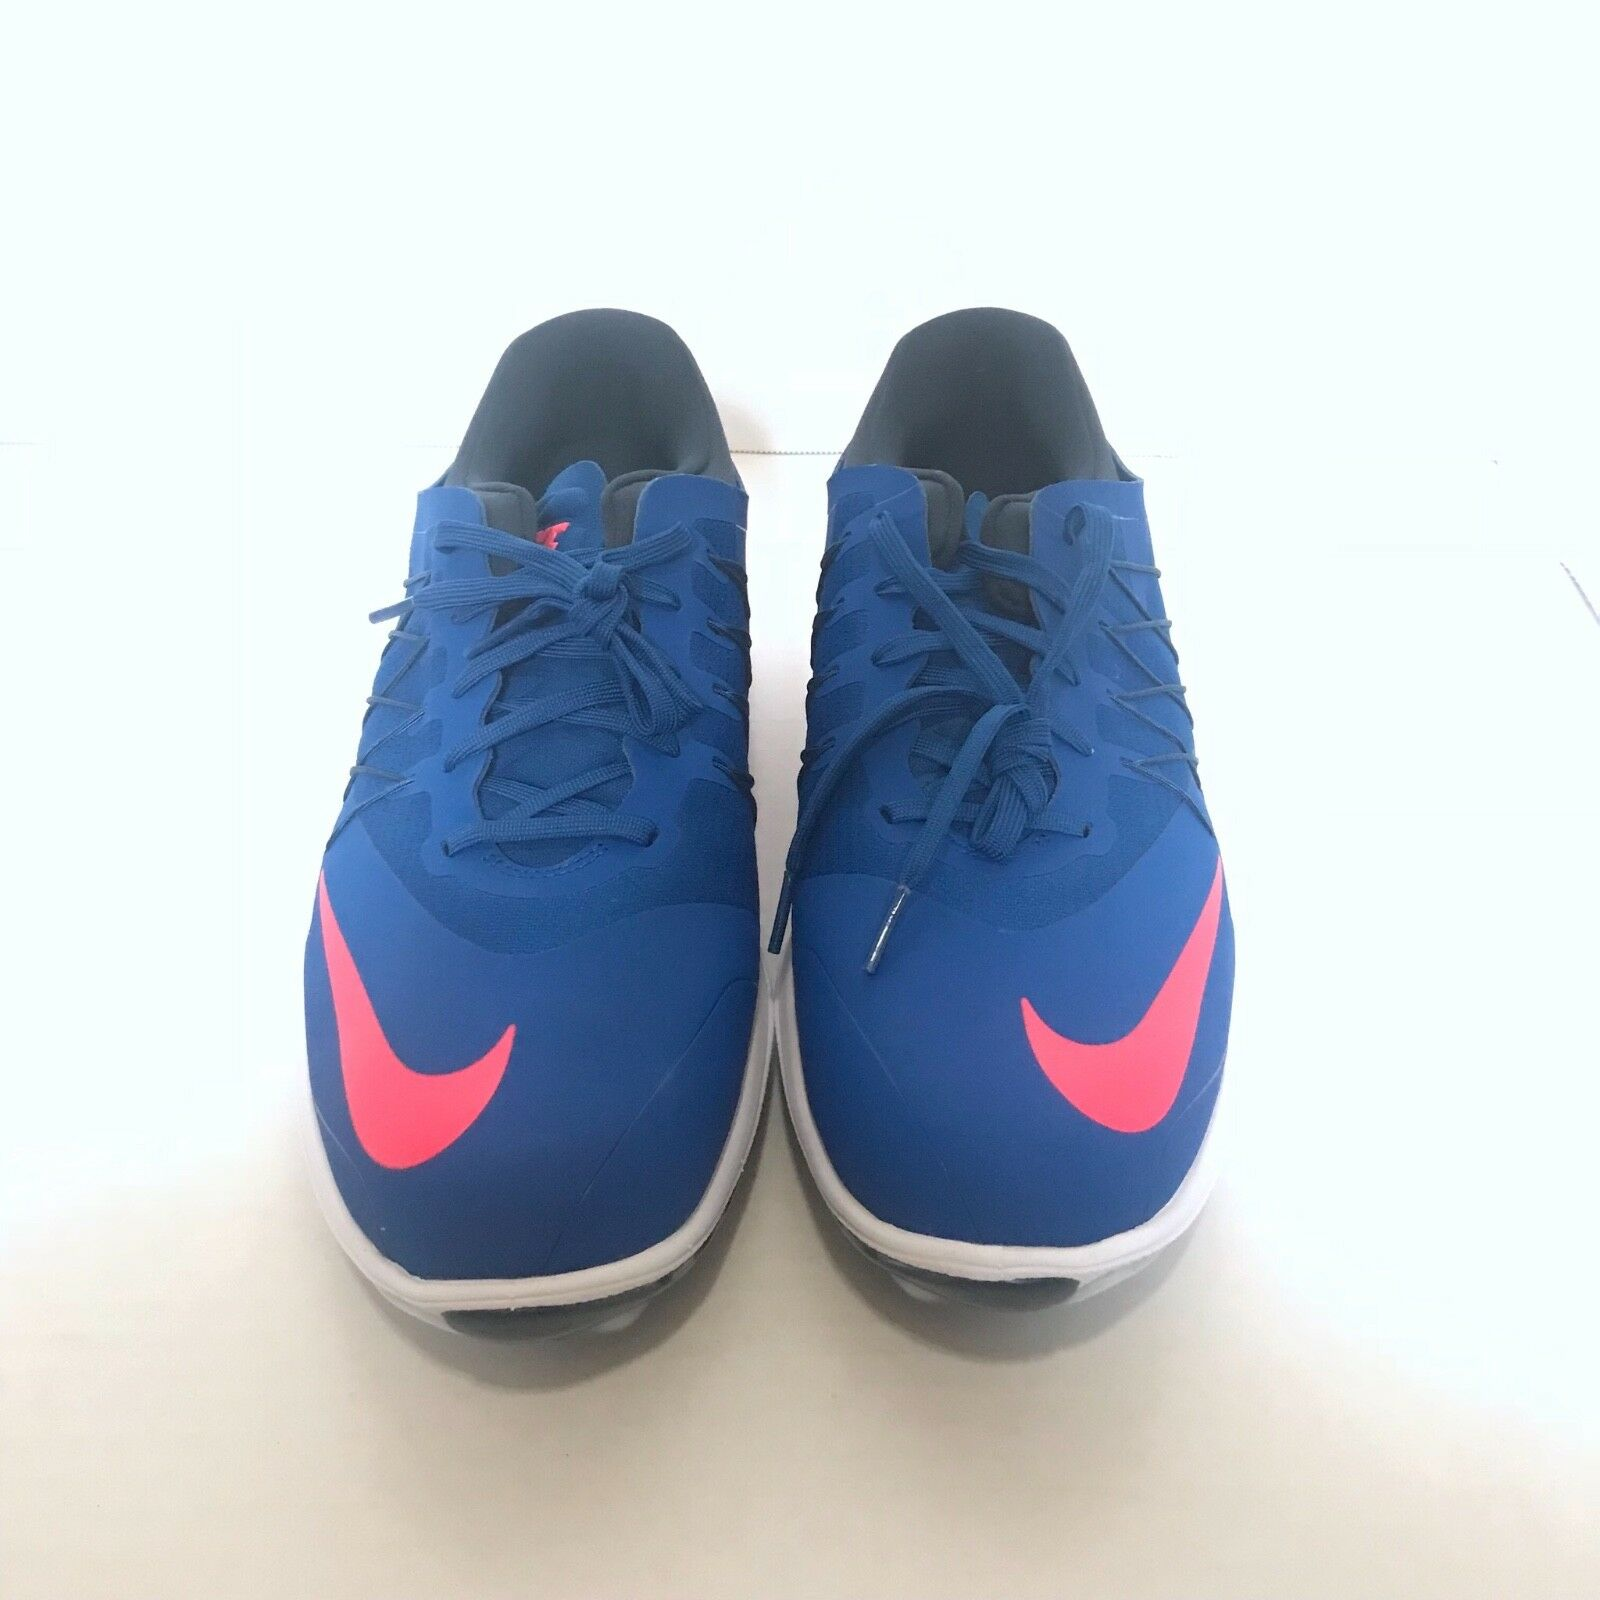 separation shoes 610e3 16450 Nike Men s Lunar Control Vapor Size 11.5 Blue Jay Golf Golf Golf Shoes  849971-401